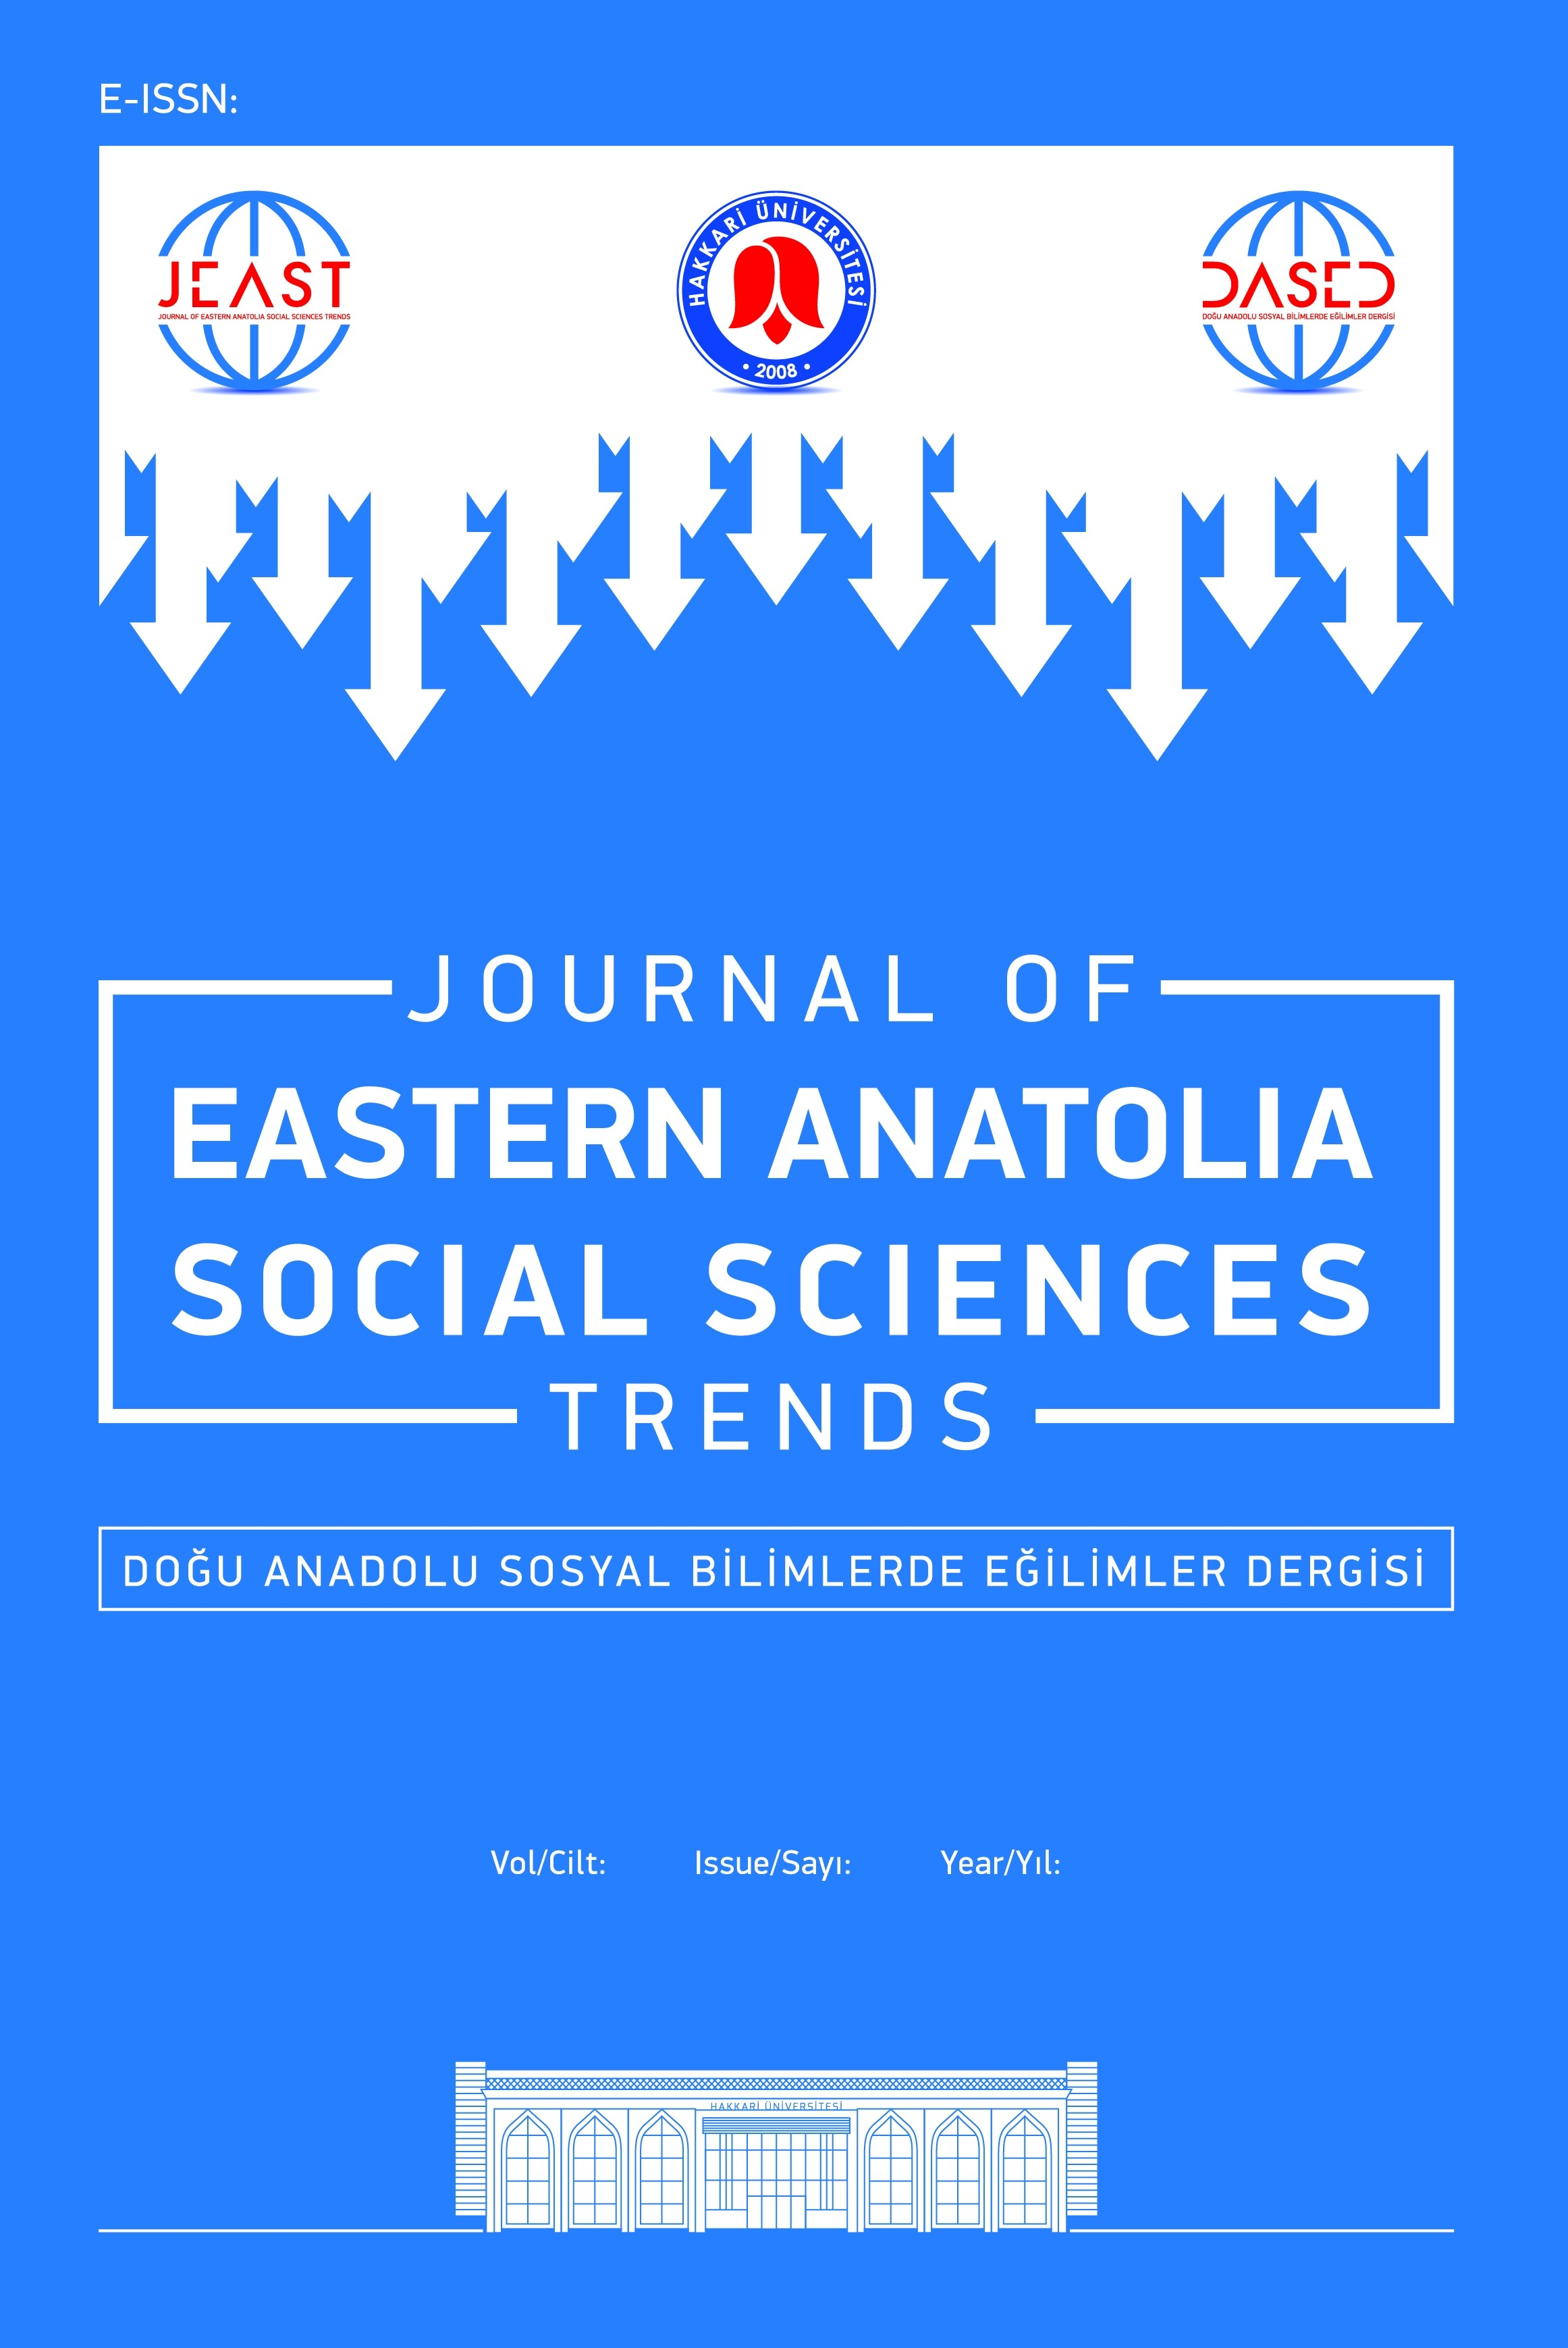 Journal of Eastern Anatolia Social Sciences Trend